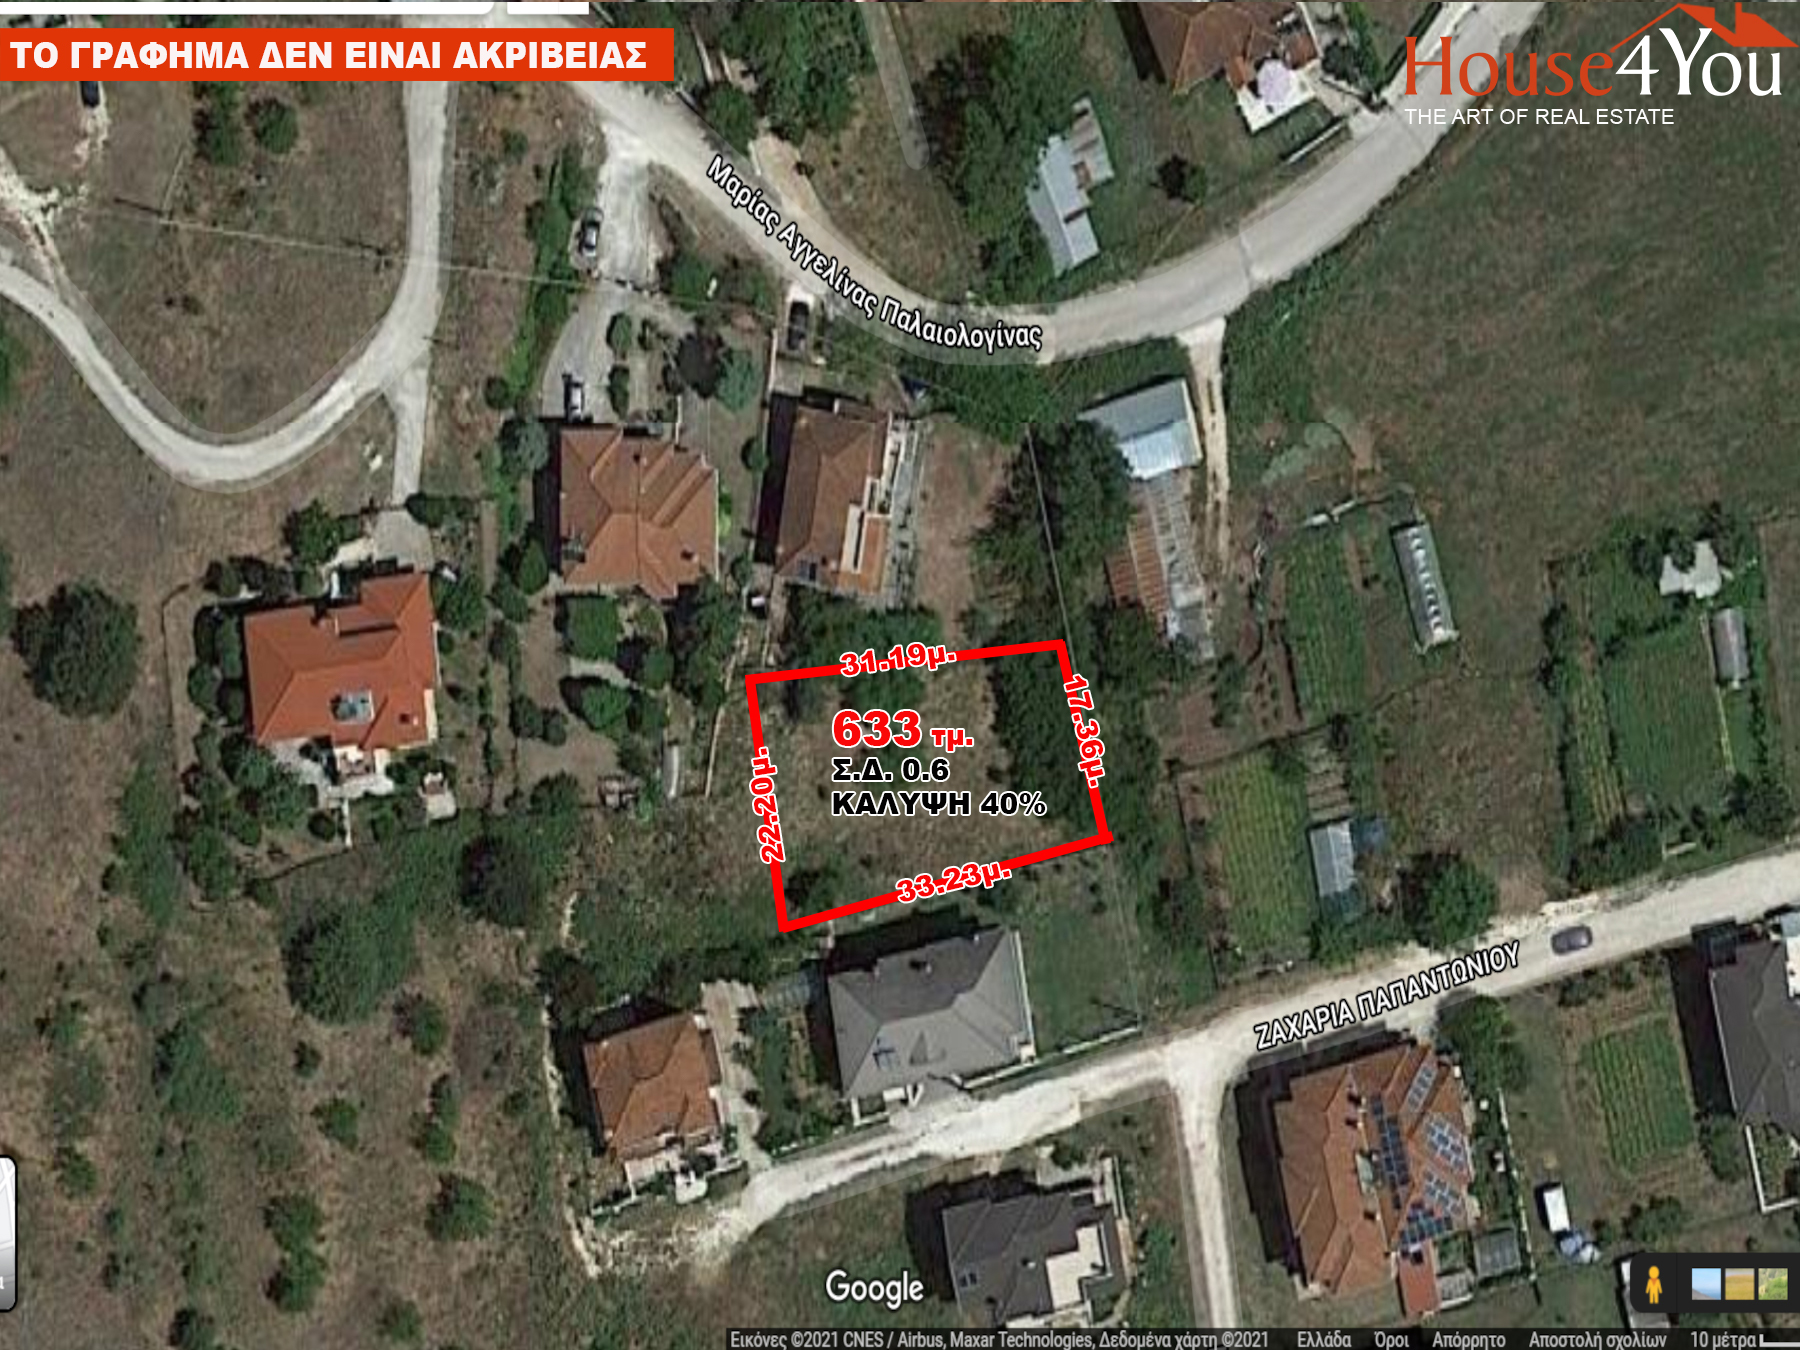 For sale a plot of 633 sq.m. and S.D. 0.6 in Neochoropoulo in Ioannina near the University